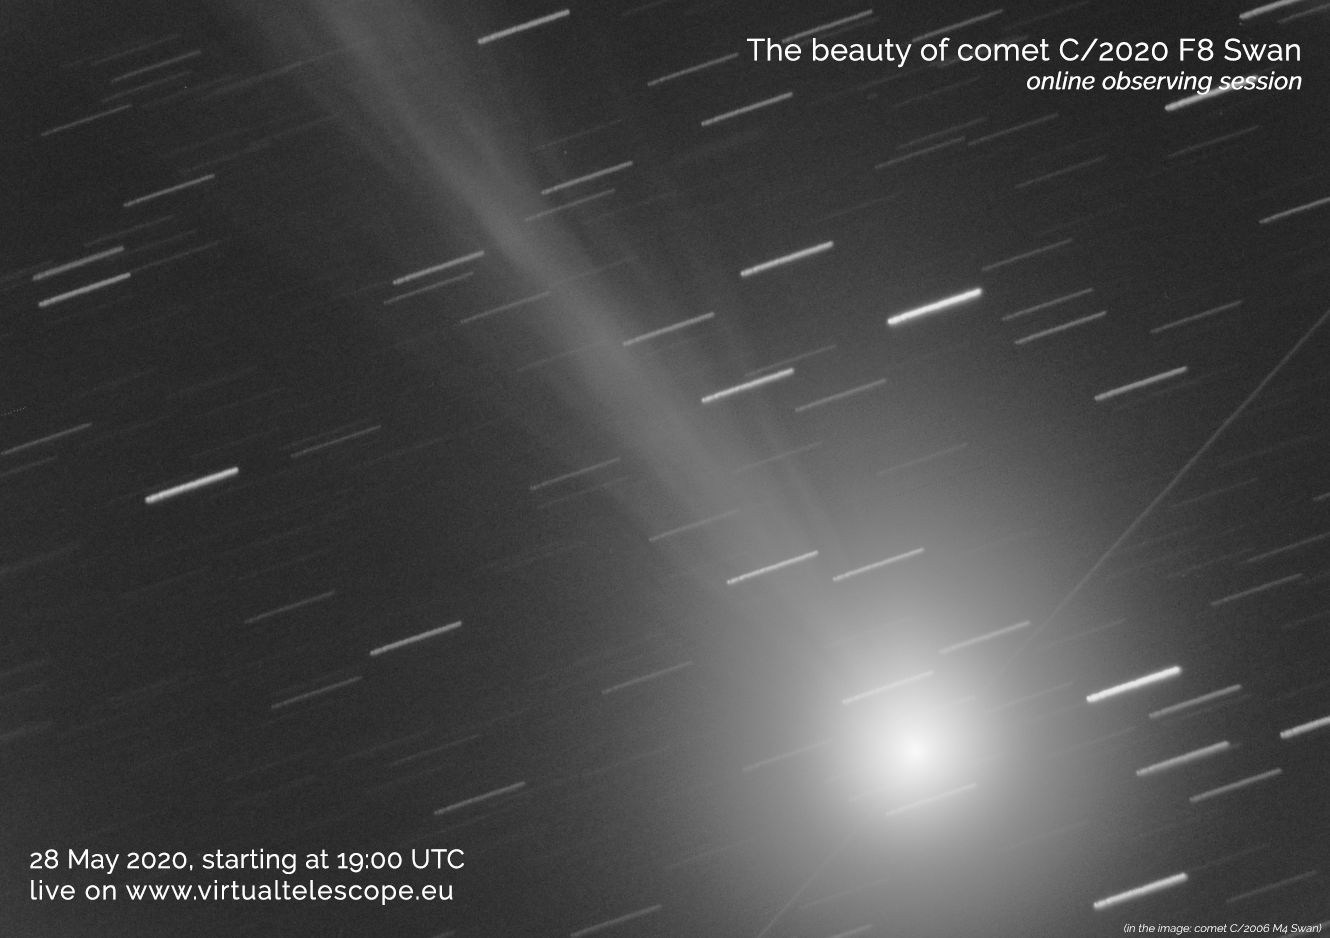 """The Beauty of Comet C/2020 F8 Swan"": poster of the event."